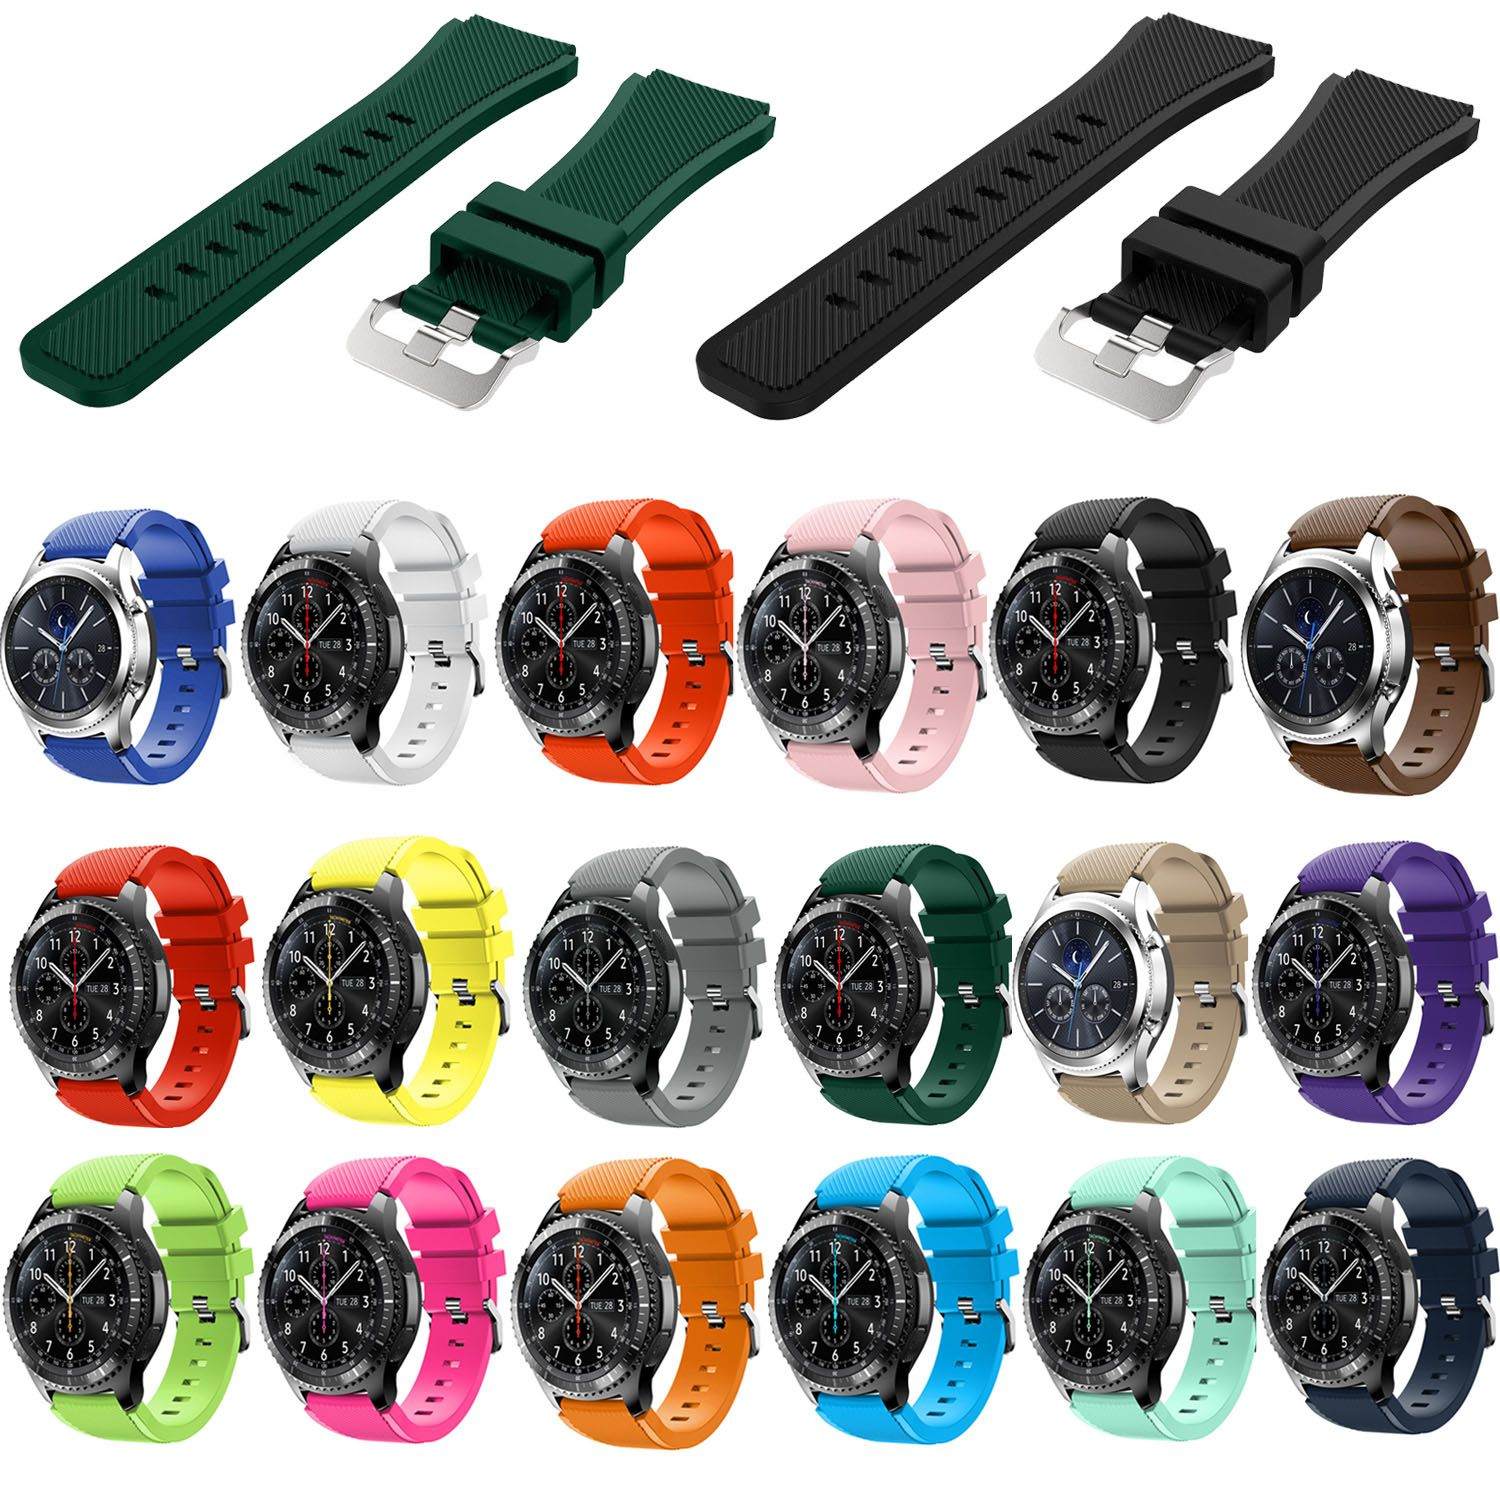 Pin On Watches Accessories